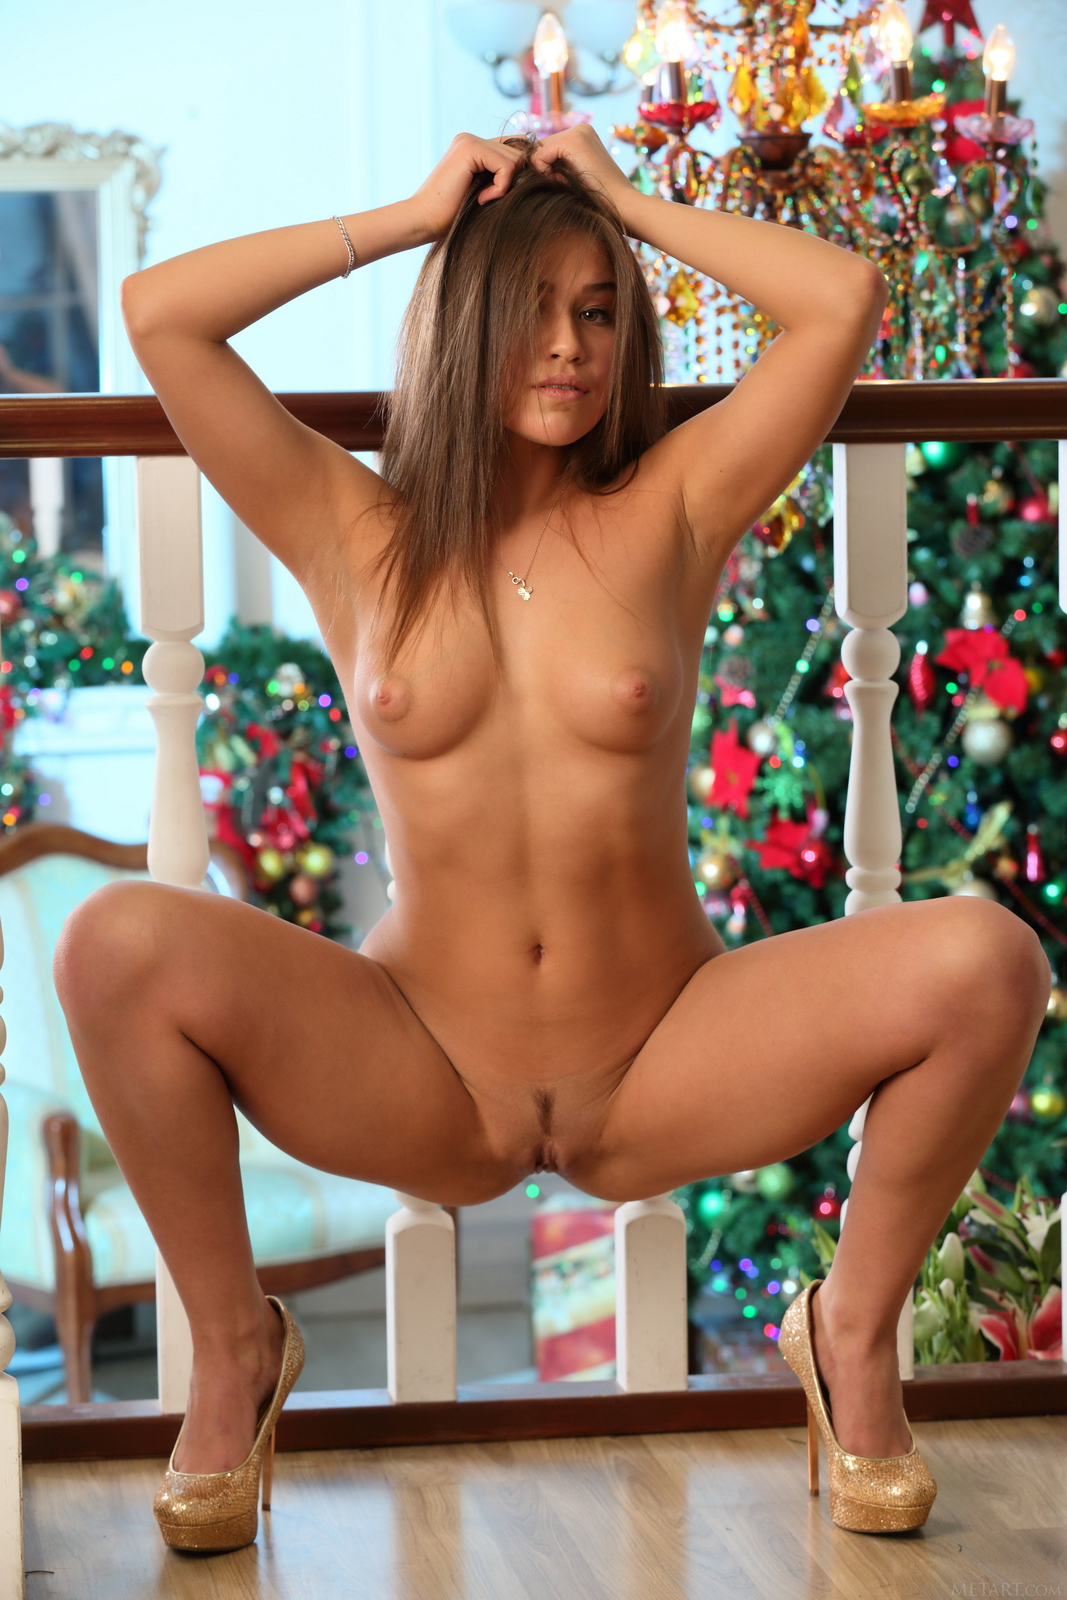 foxy-salt-lingerie-high-heels-nude-girl-xmas-metart-14